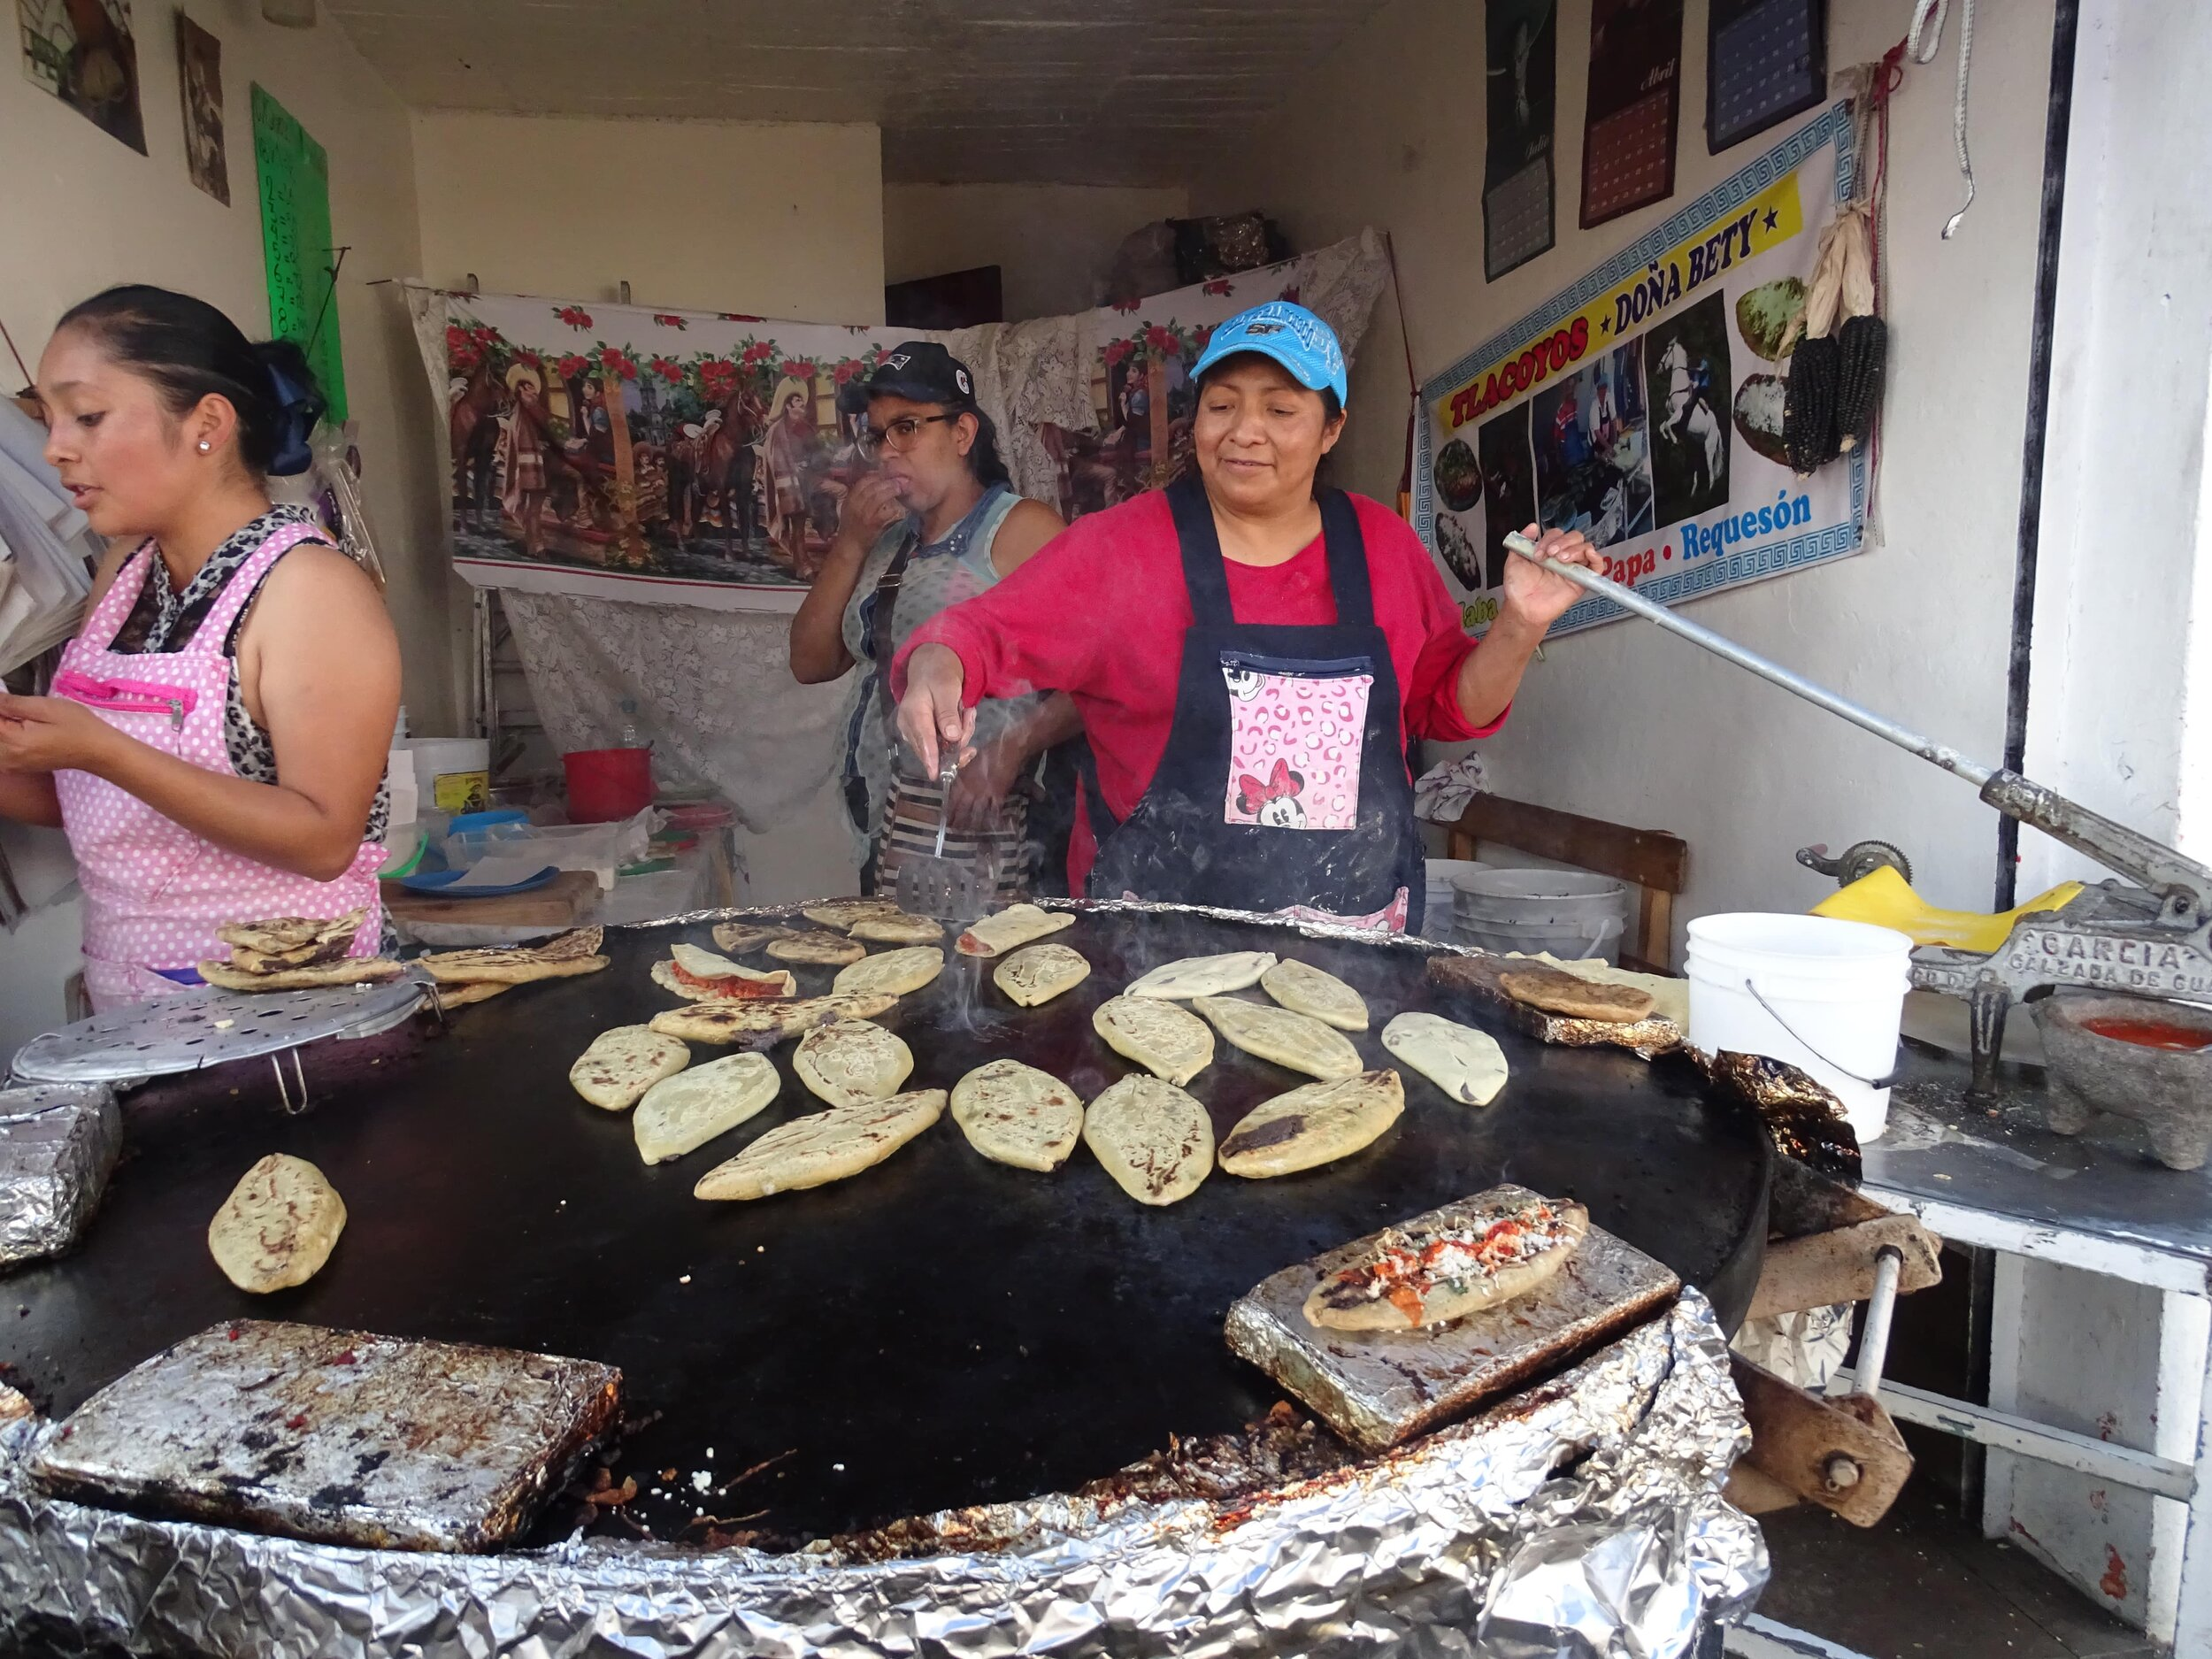 Making the Mexico City street food tlacoyo.